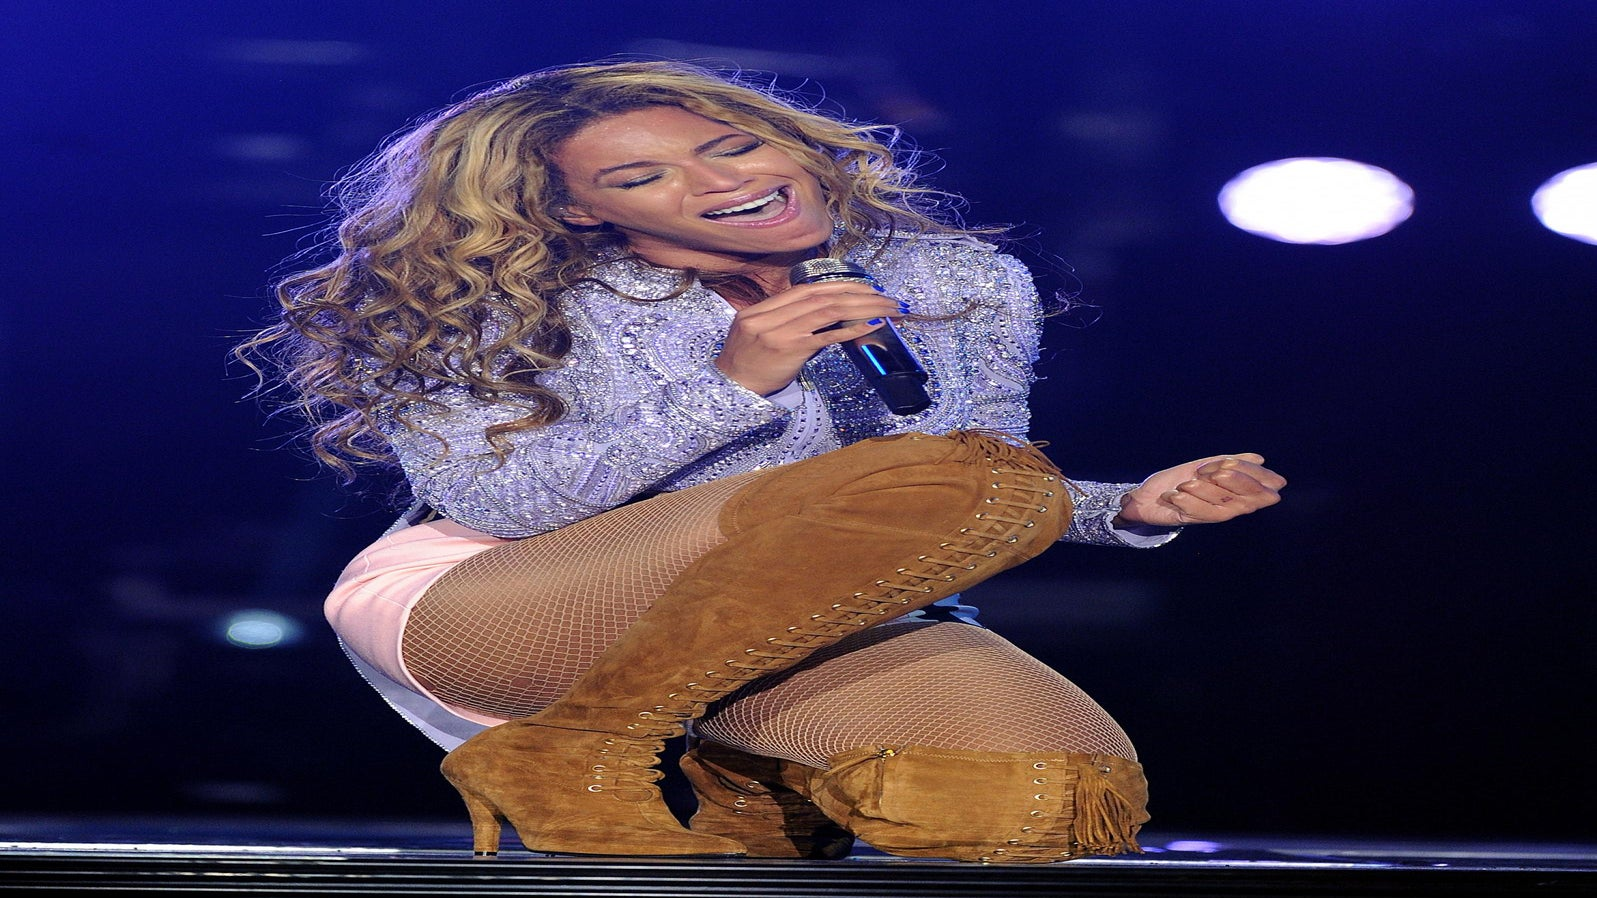 Beyoncé's Hair Gets Caught in Stage Fan